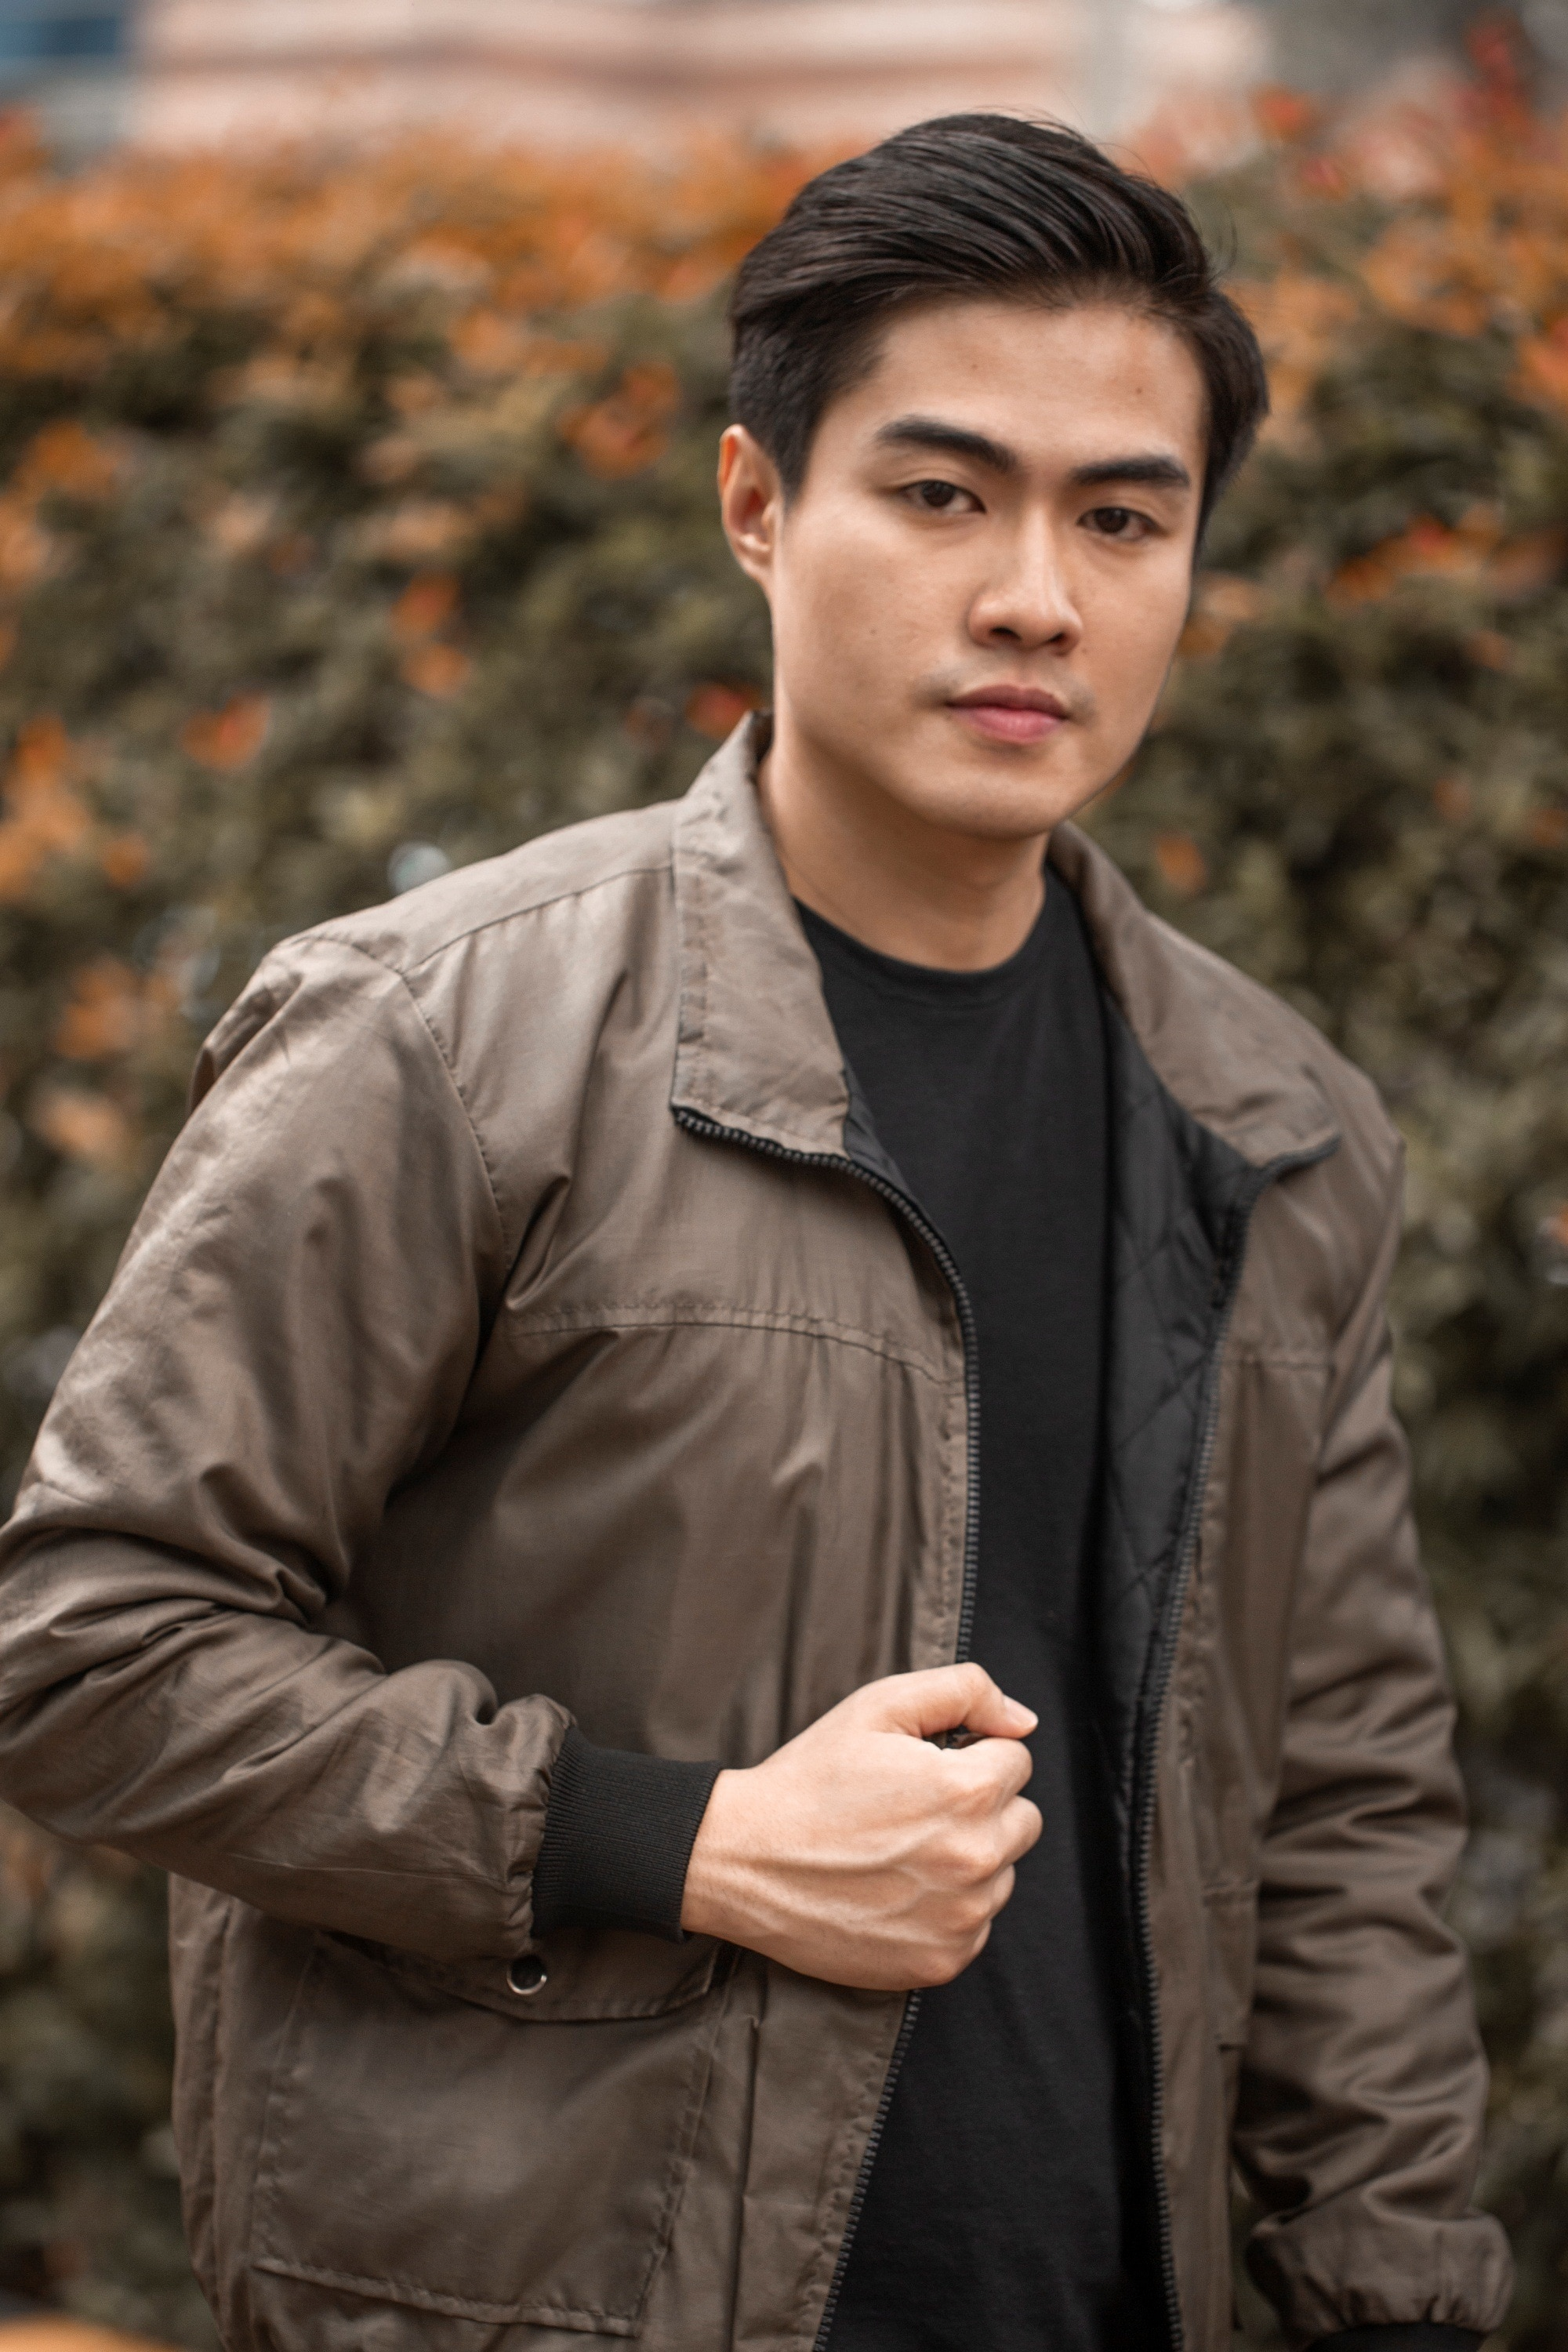 Asian man with modern quiff for men wearing a jacket